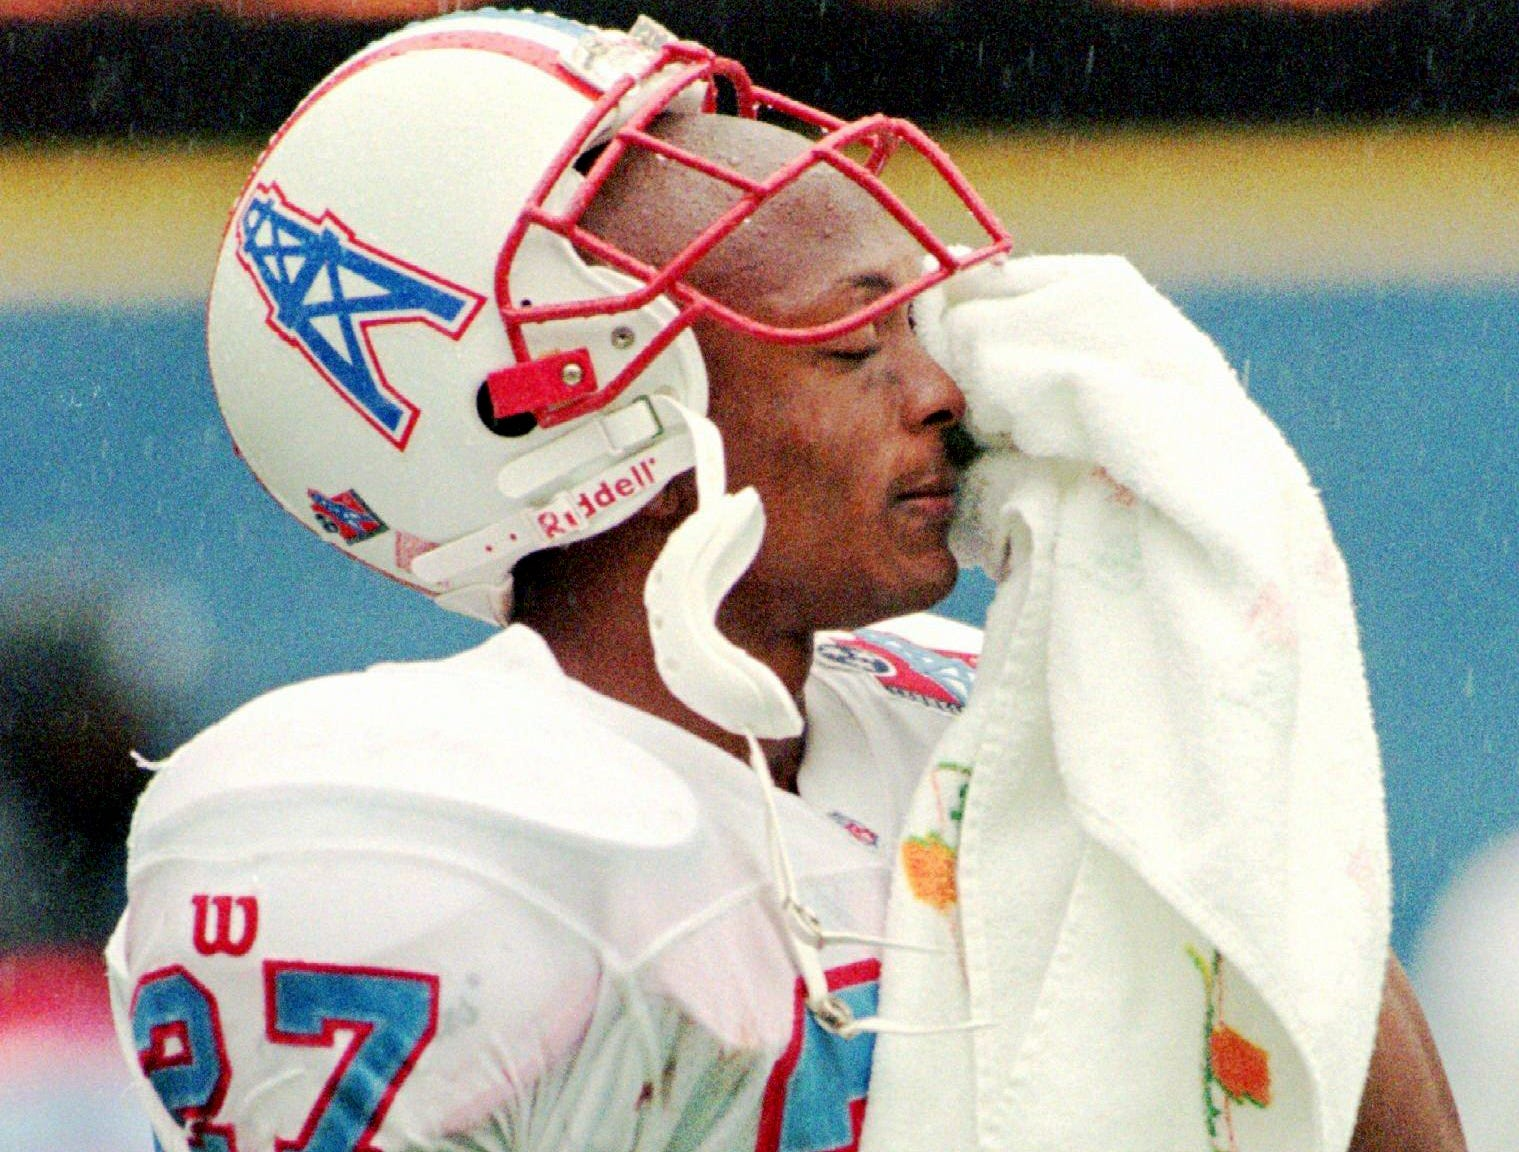 Tennessee Oilers running back Eddie George wipes his face in the closing moments of their 37-24 loss to the Pittsburgh Steelers in Pittsburgh Sept. 28, 1997.